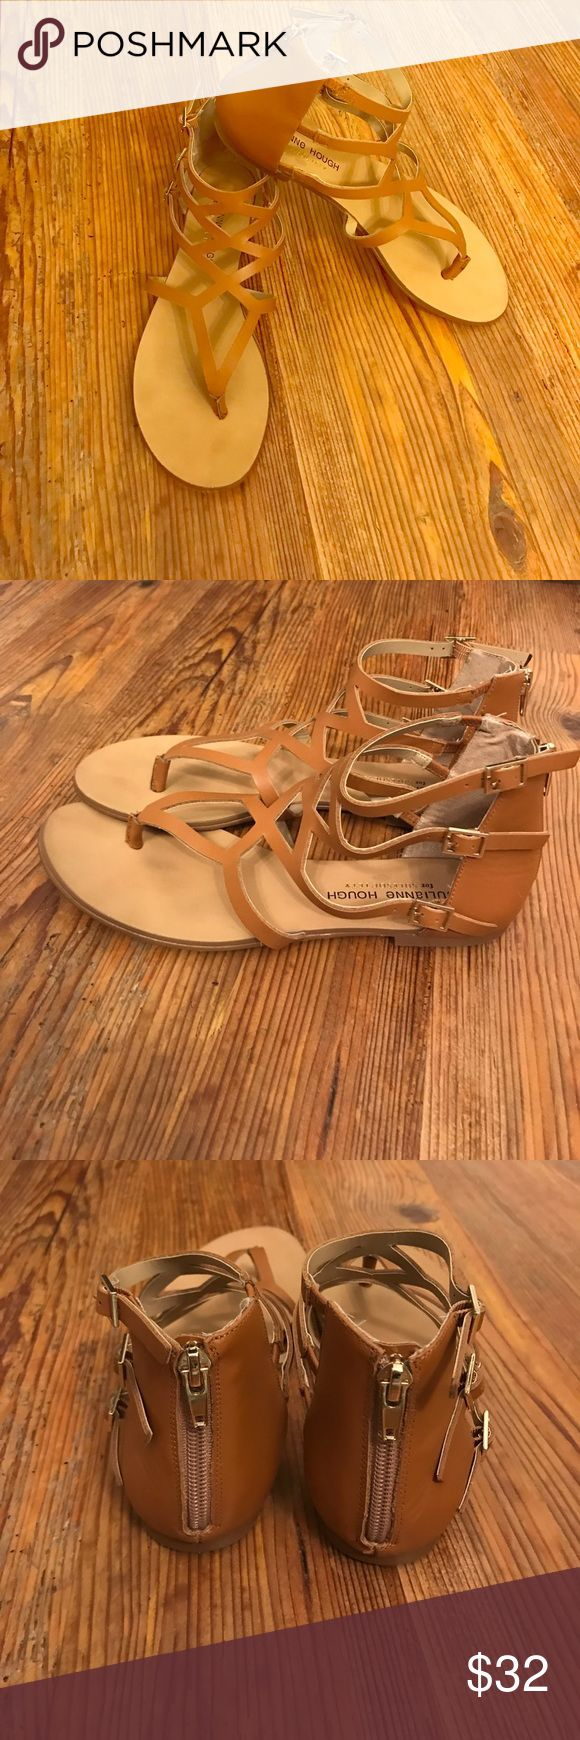 Tan sandals From Sole Society, super cute Julianne Hough gladiator sandals. Zipper back. Gold accents. Unfortunately after 3 kids my feet have gotten larger and these no longer fit. Sole Society Shoes Sandals